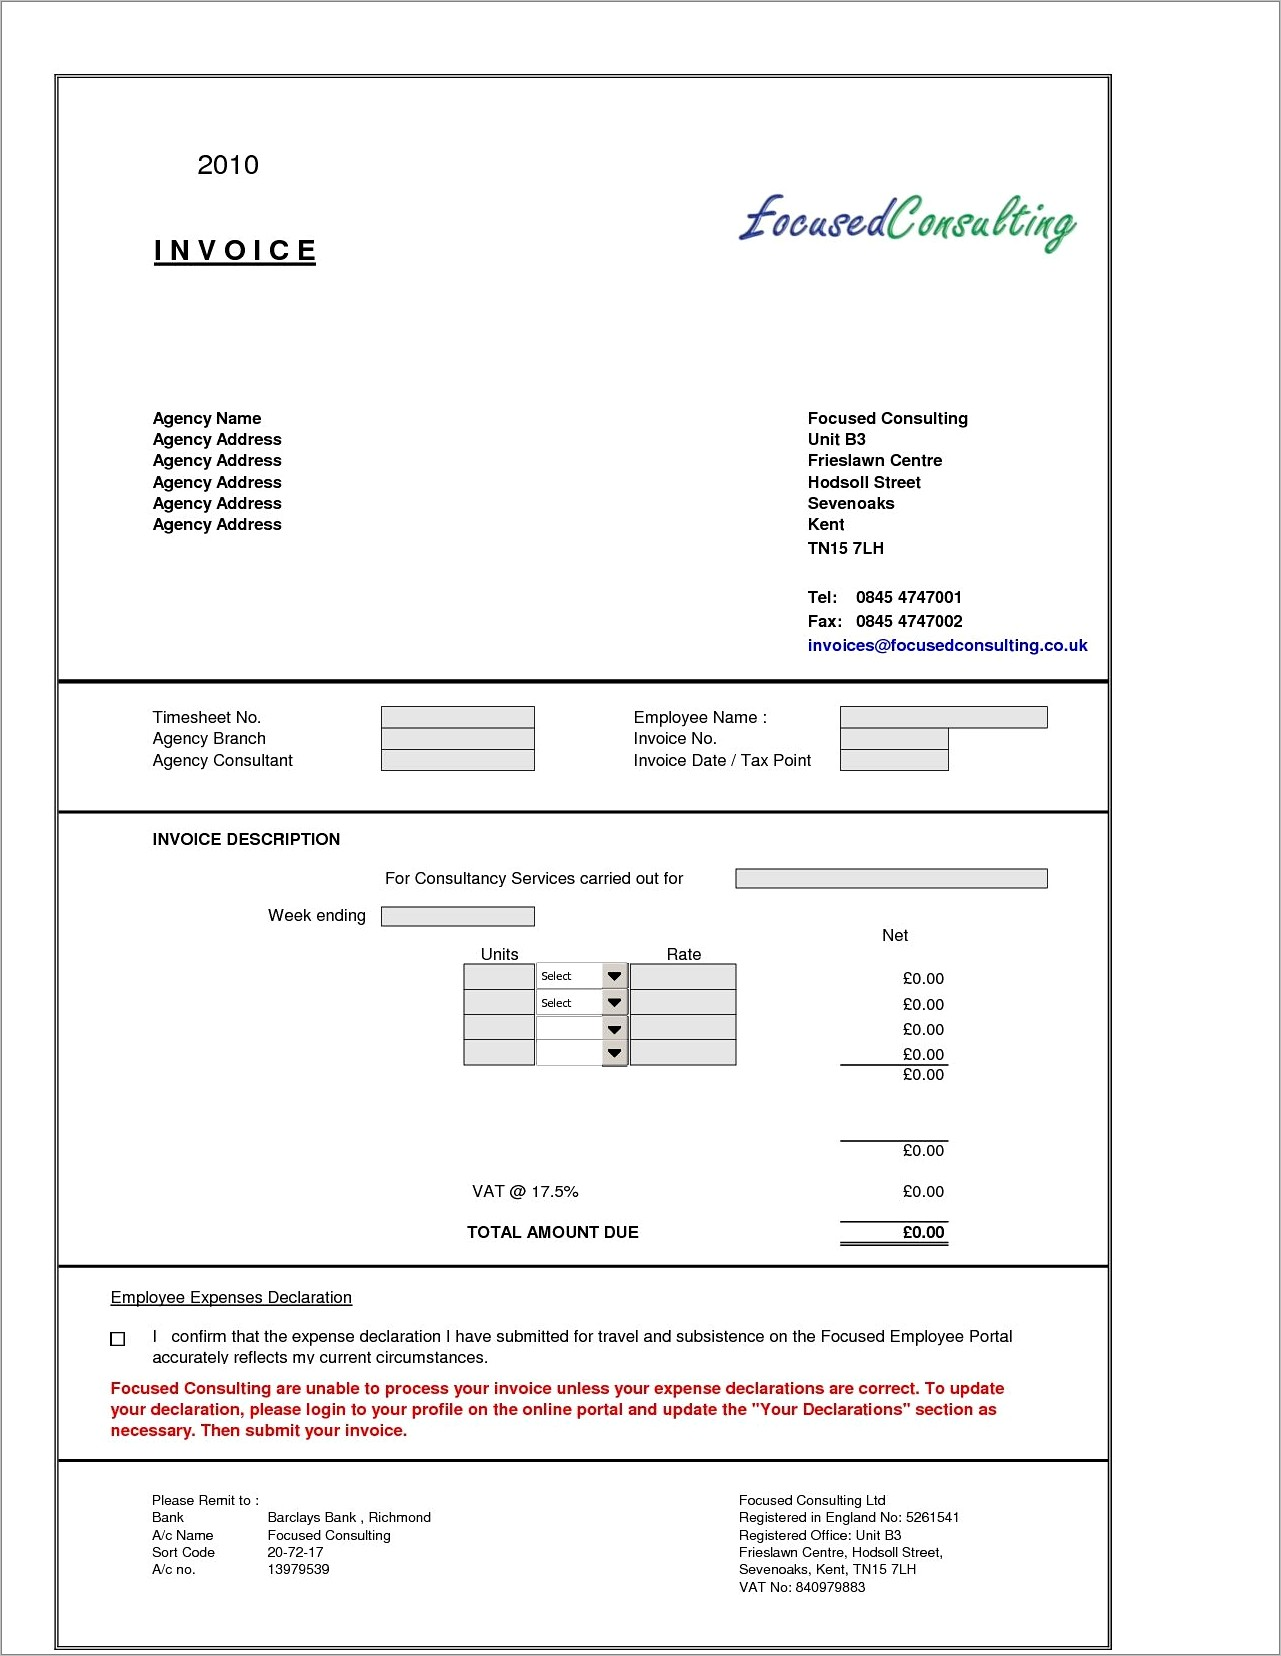 Office 2010 Templates For Invoices